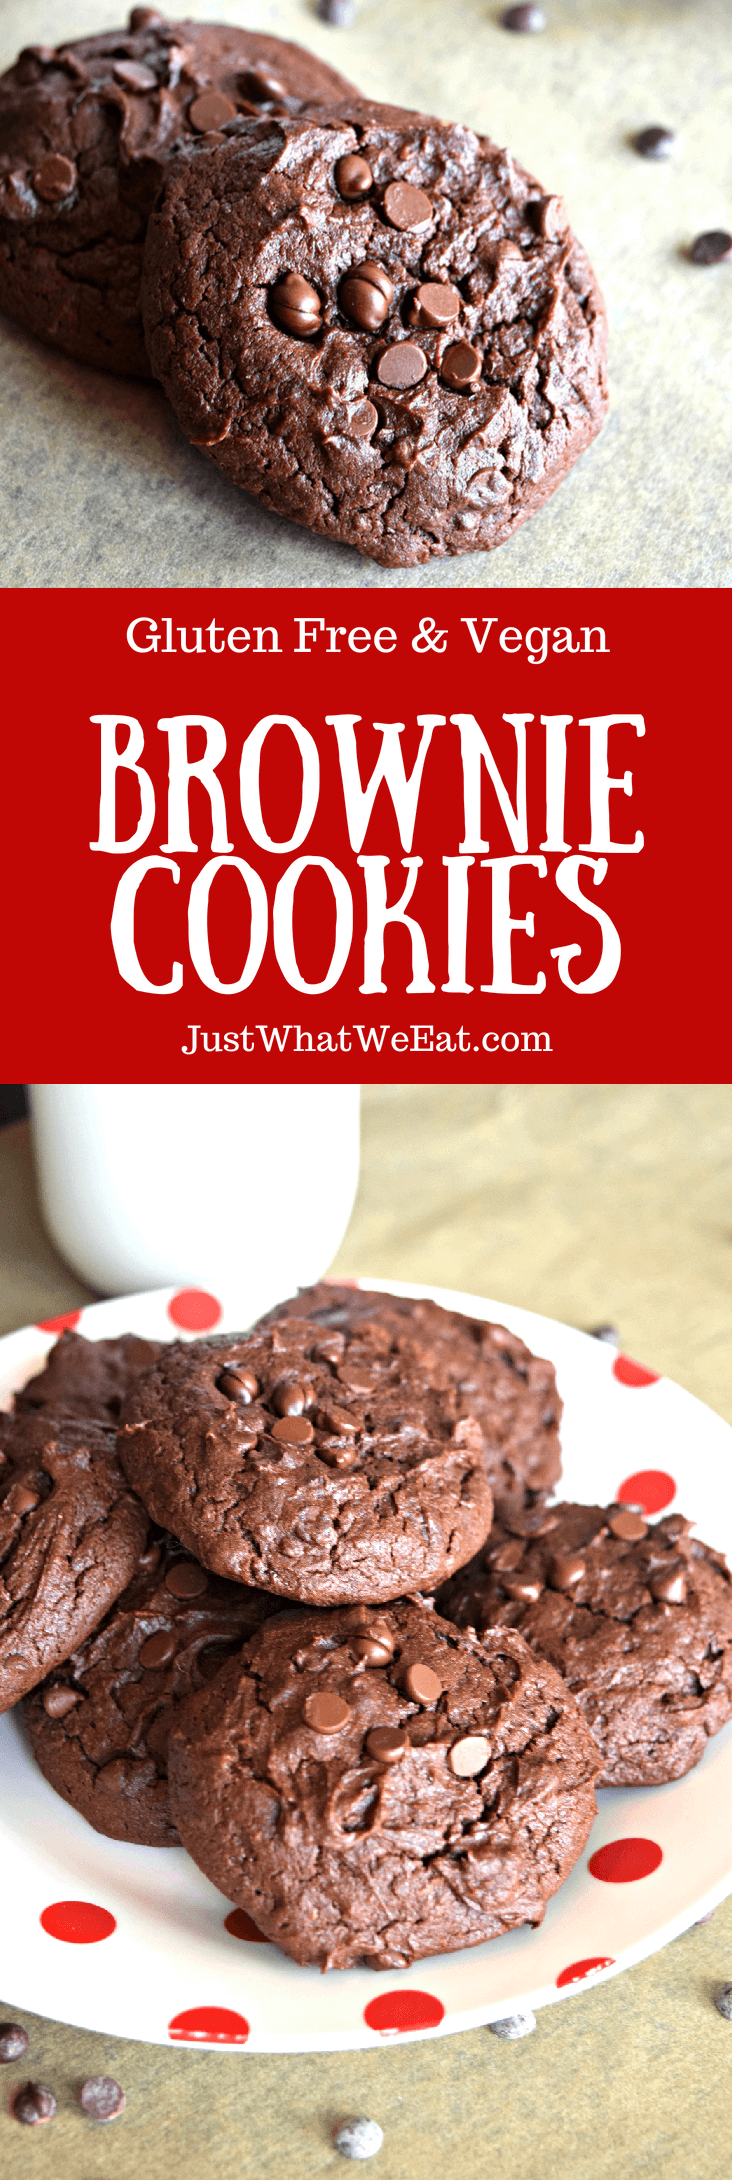 Brownie Cookies - Gluten Free & Vegan